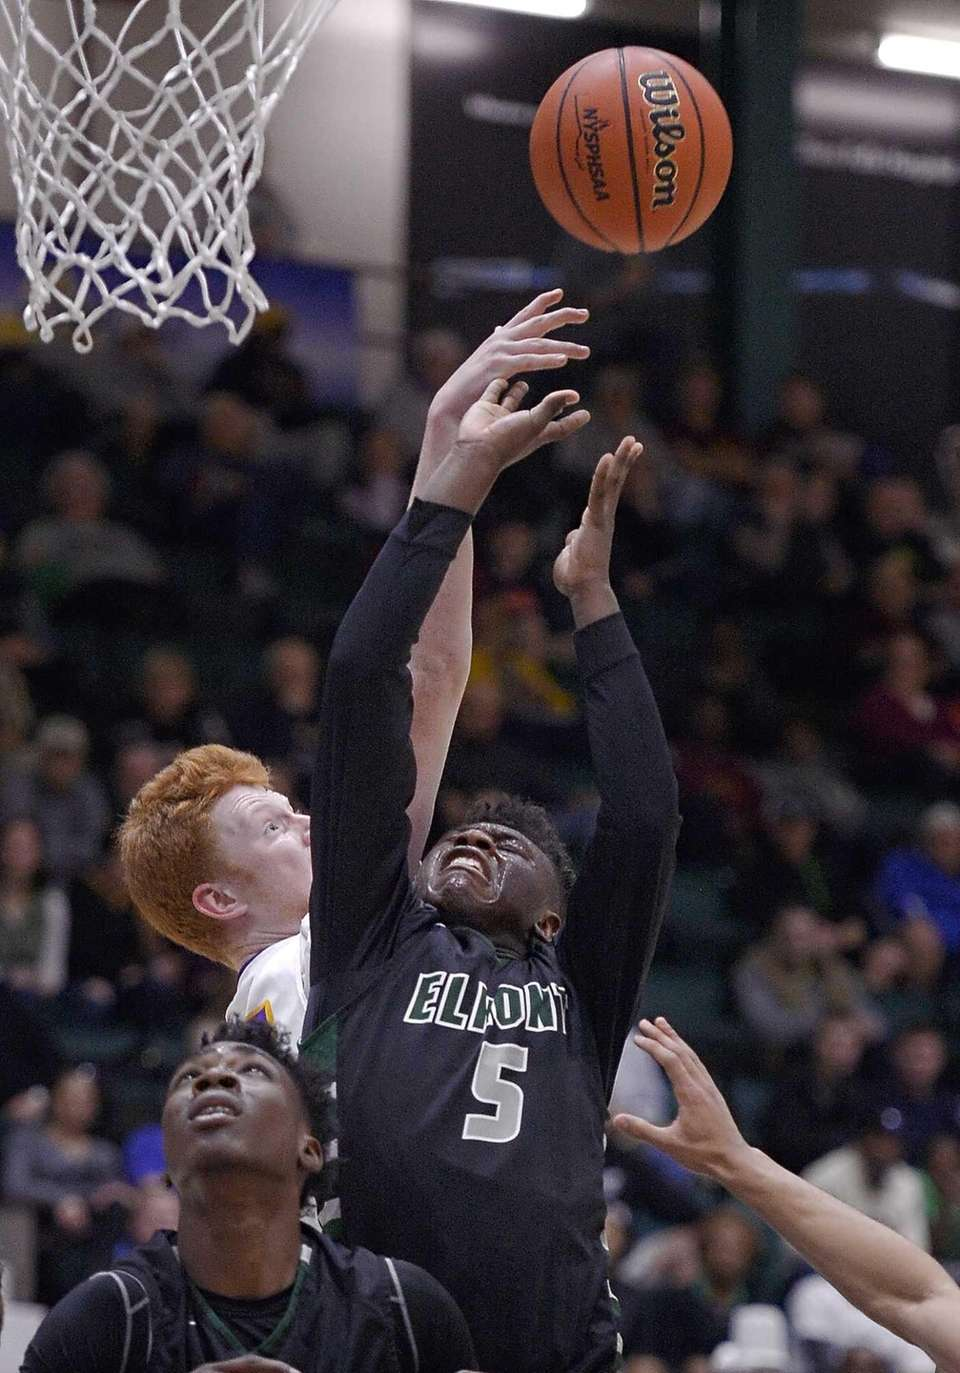 Elmont's Jalen Burgass reaches for a rebound during